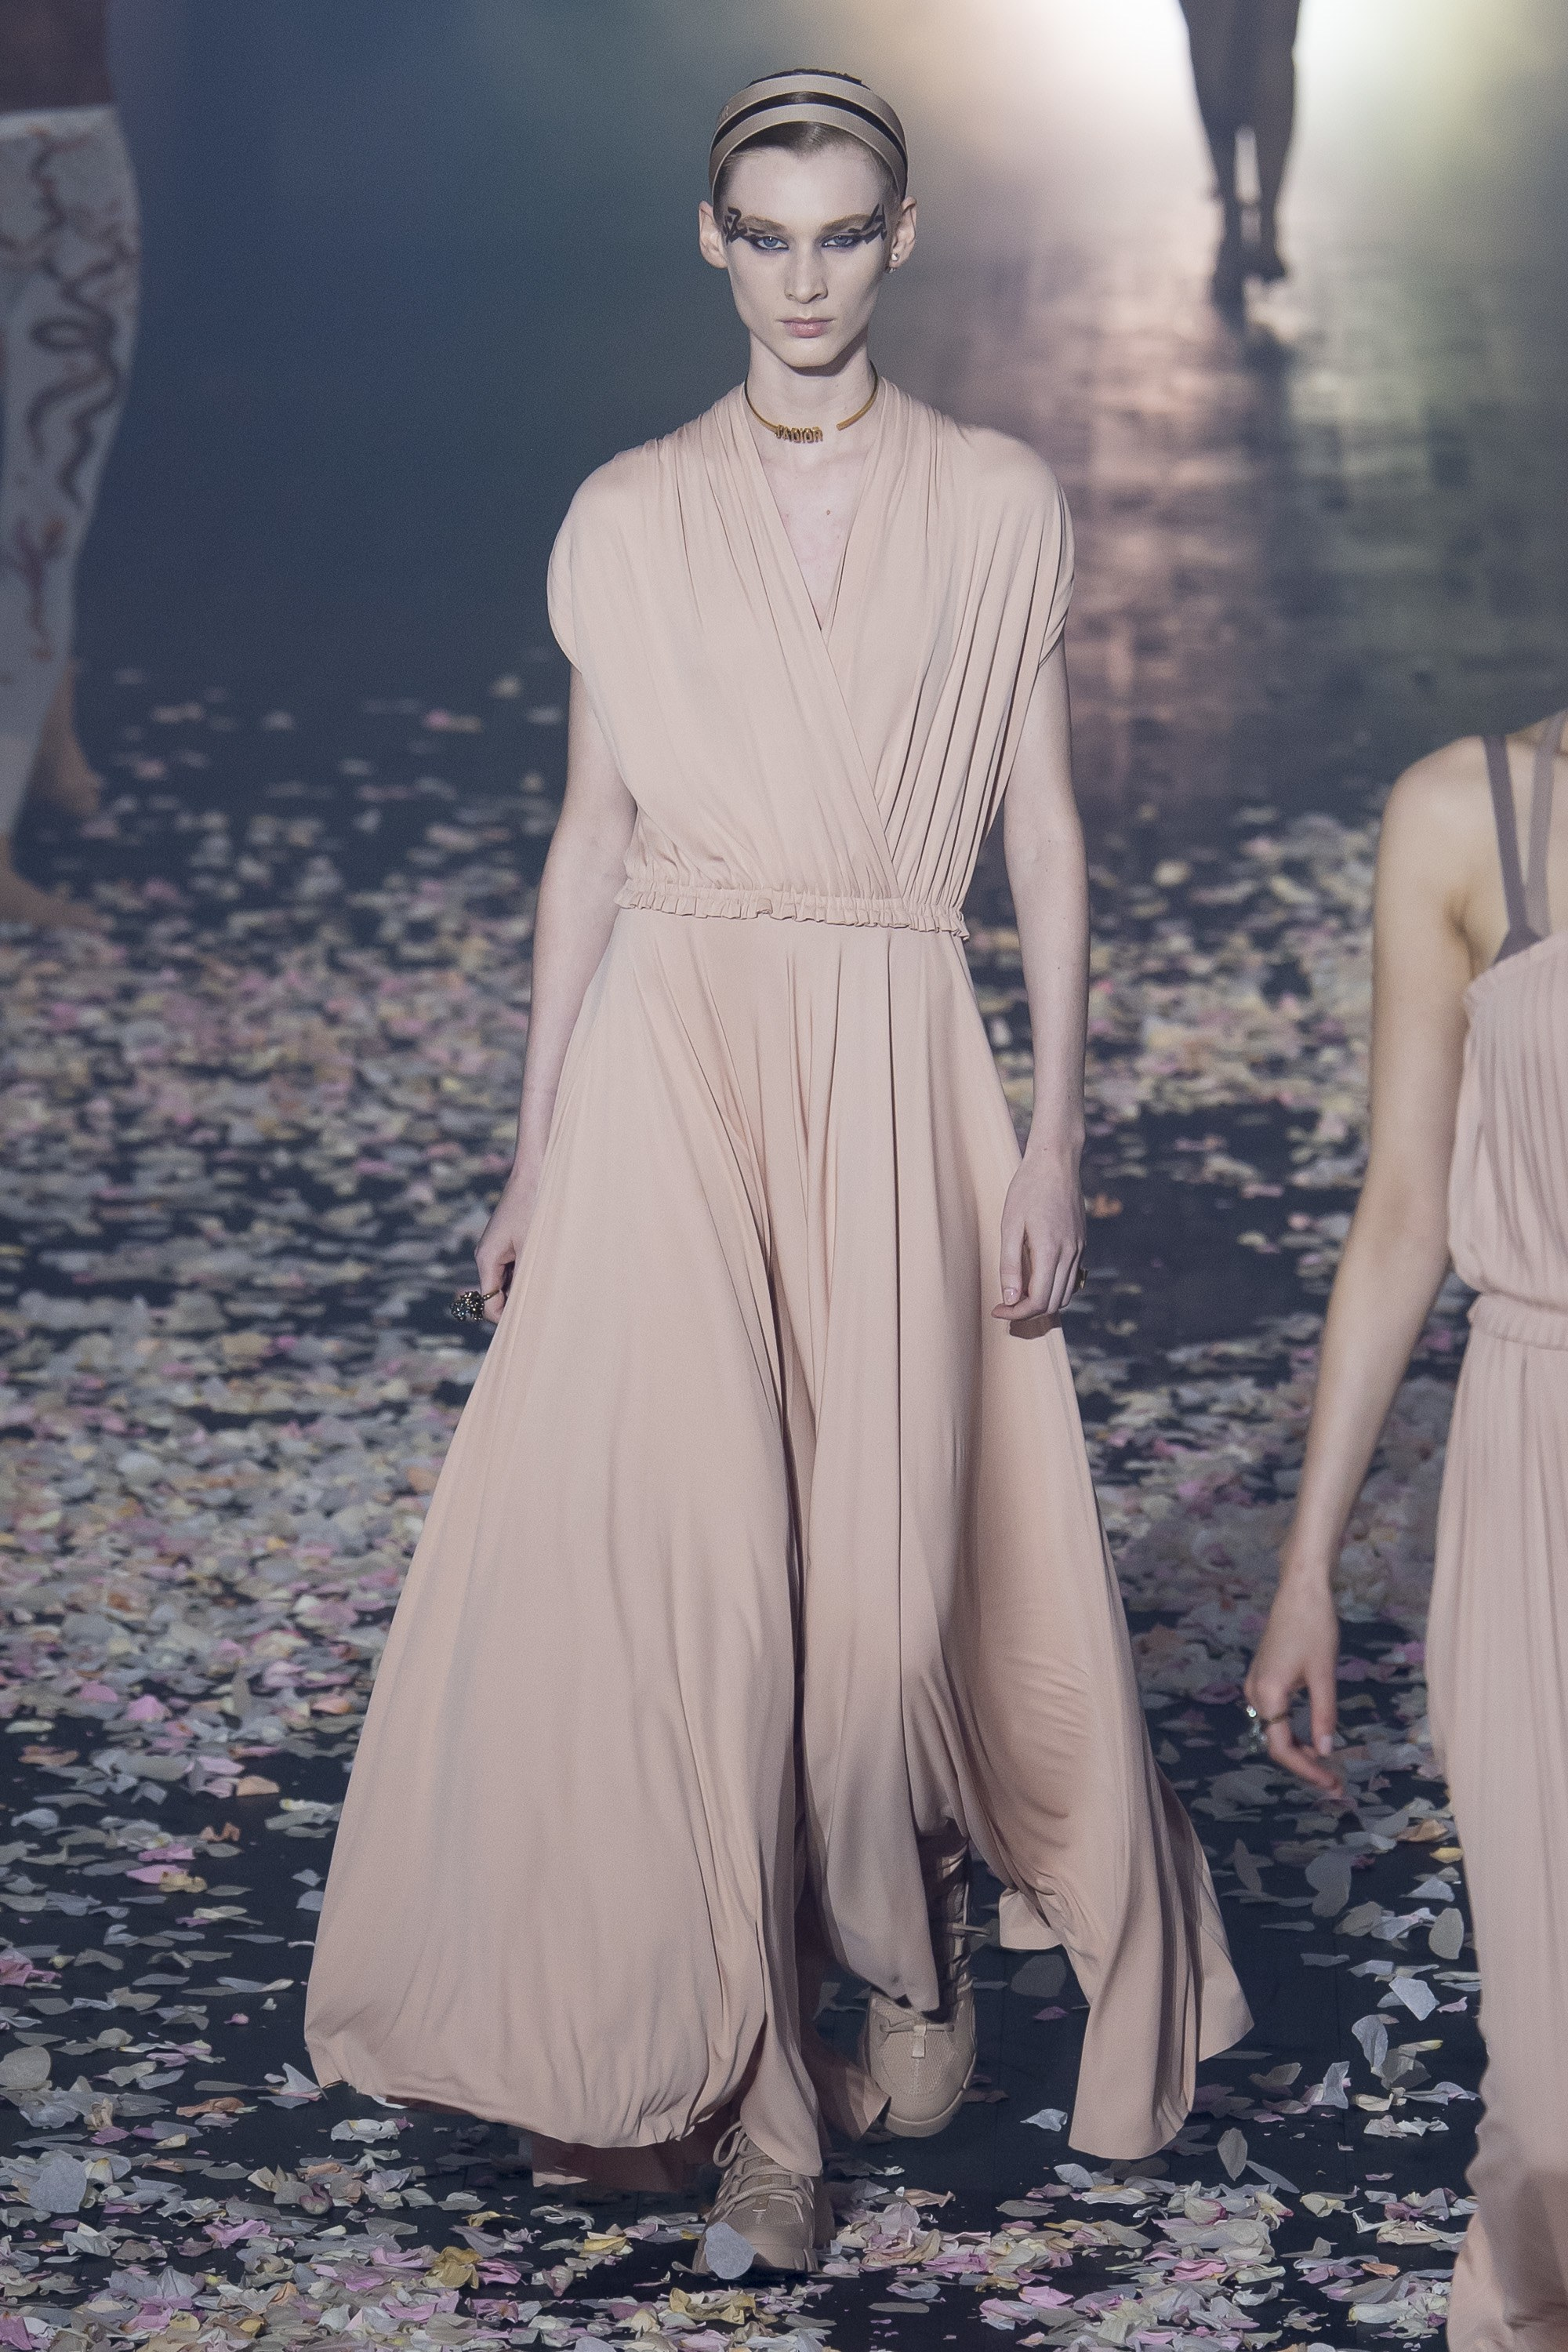 A Modern Dance Dior 2019 The Runway Forever Chic by Meg